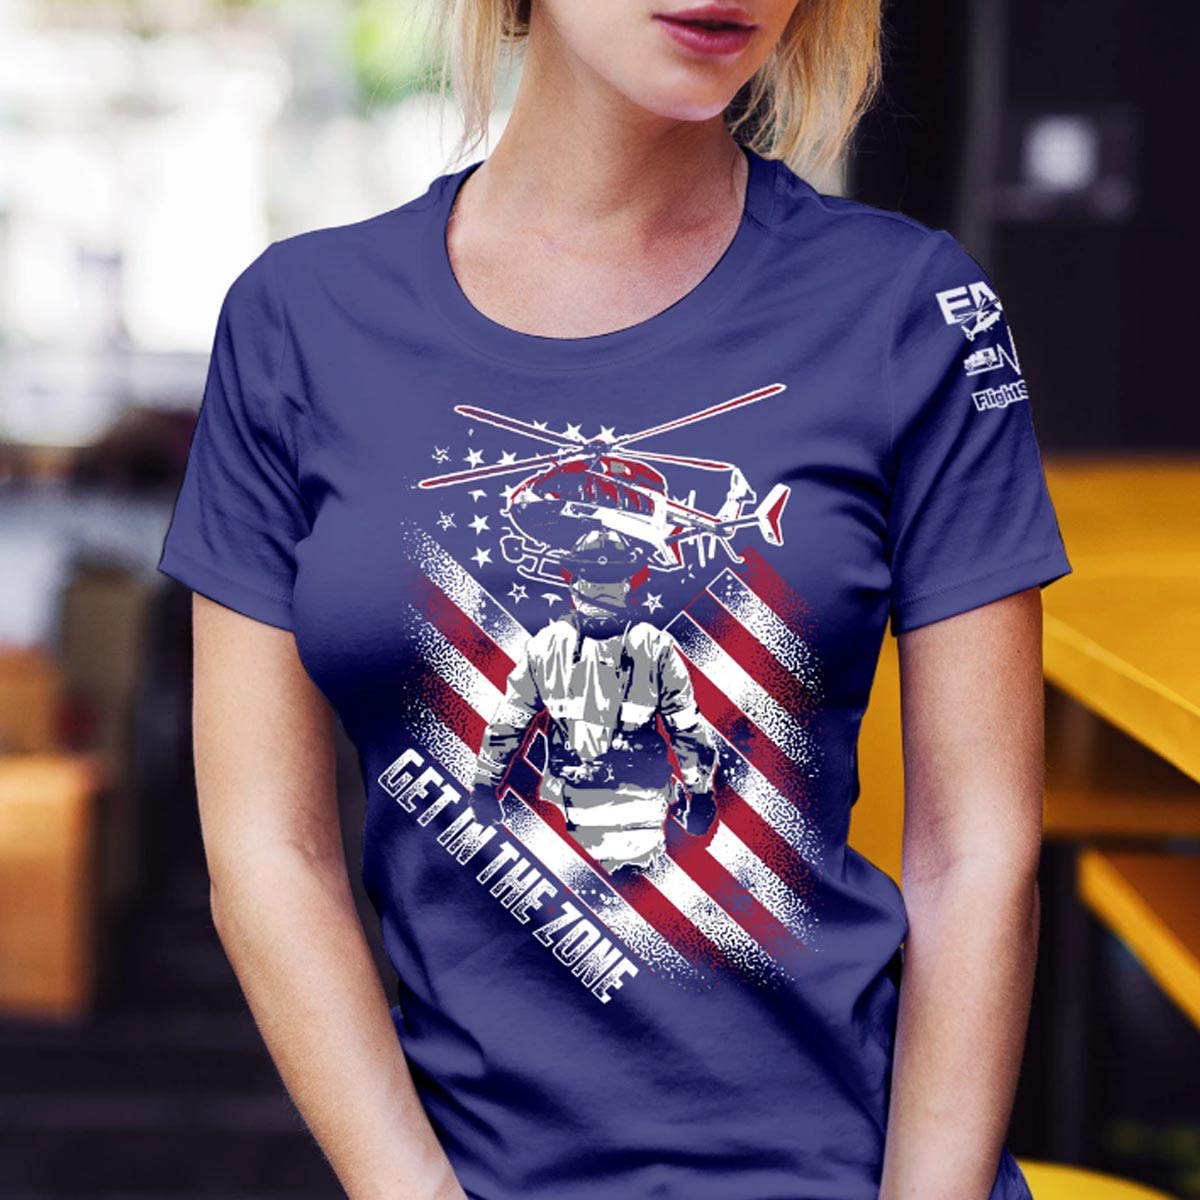 Firefighter Get In the Zone Navy Tshirt